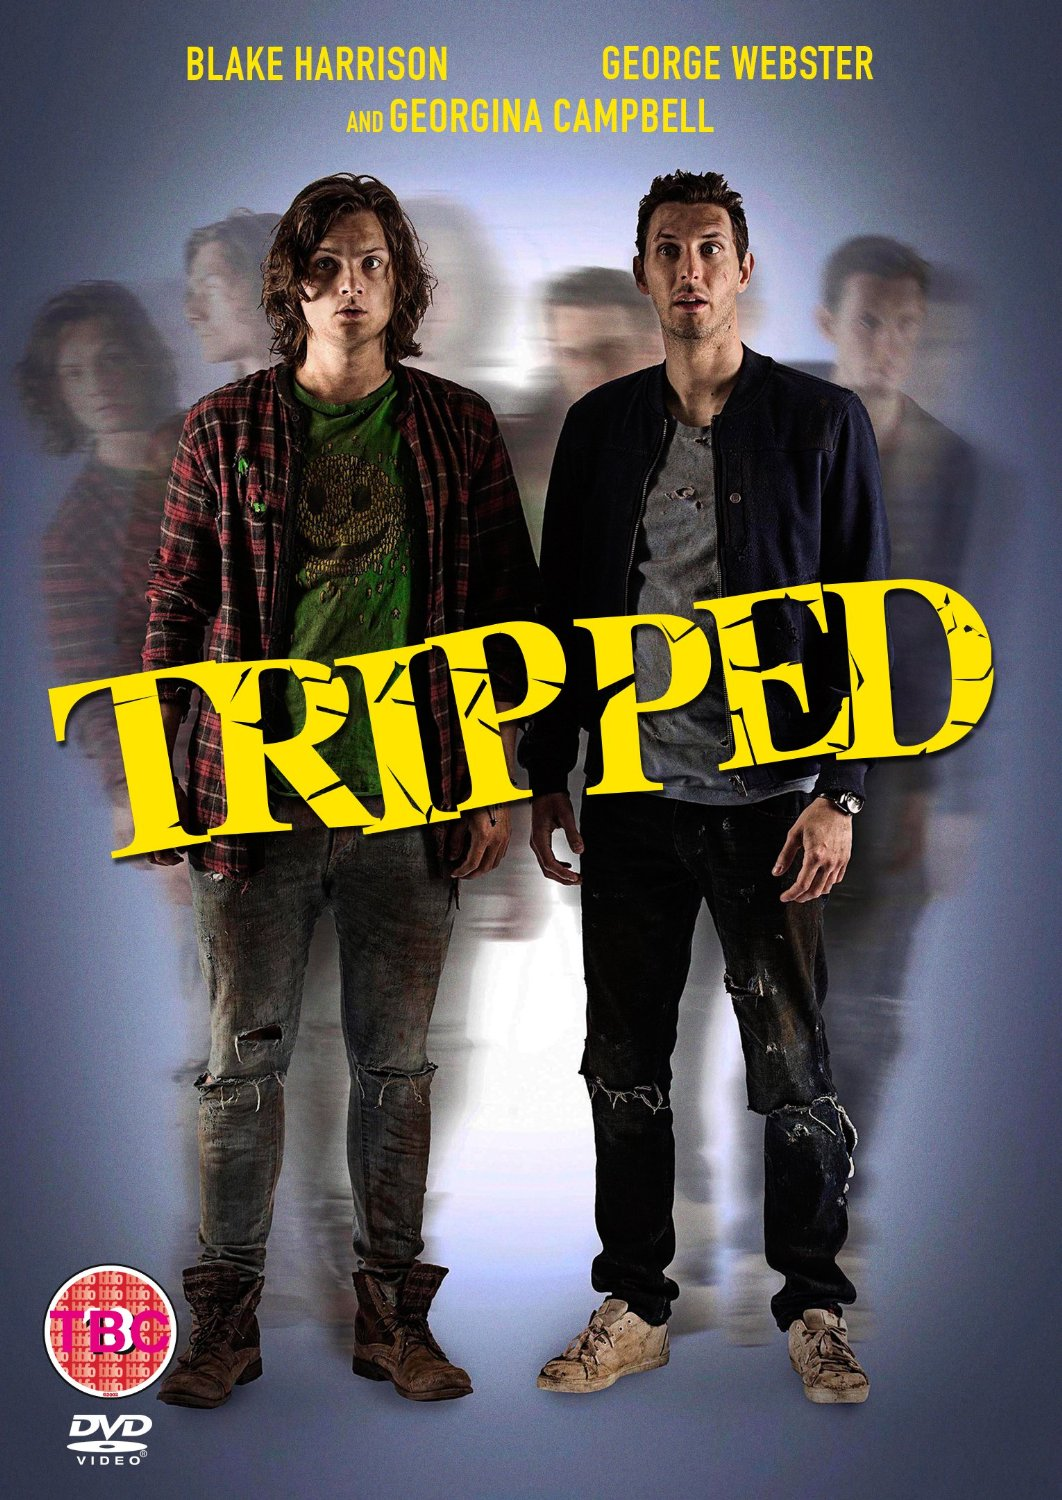 Tripped Series 1 DVD review: reality bites